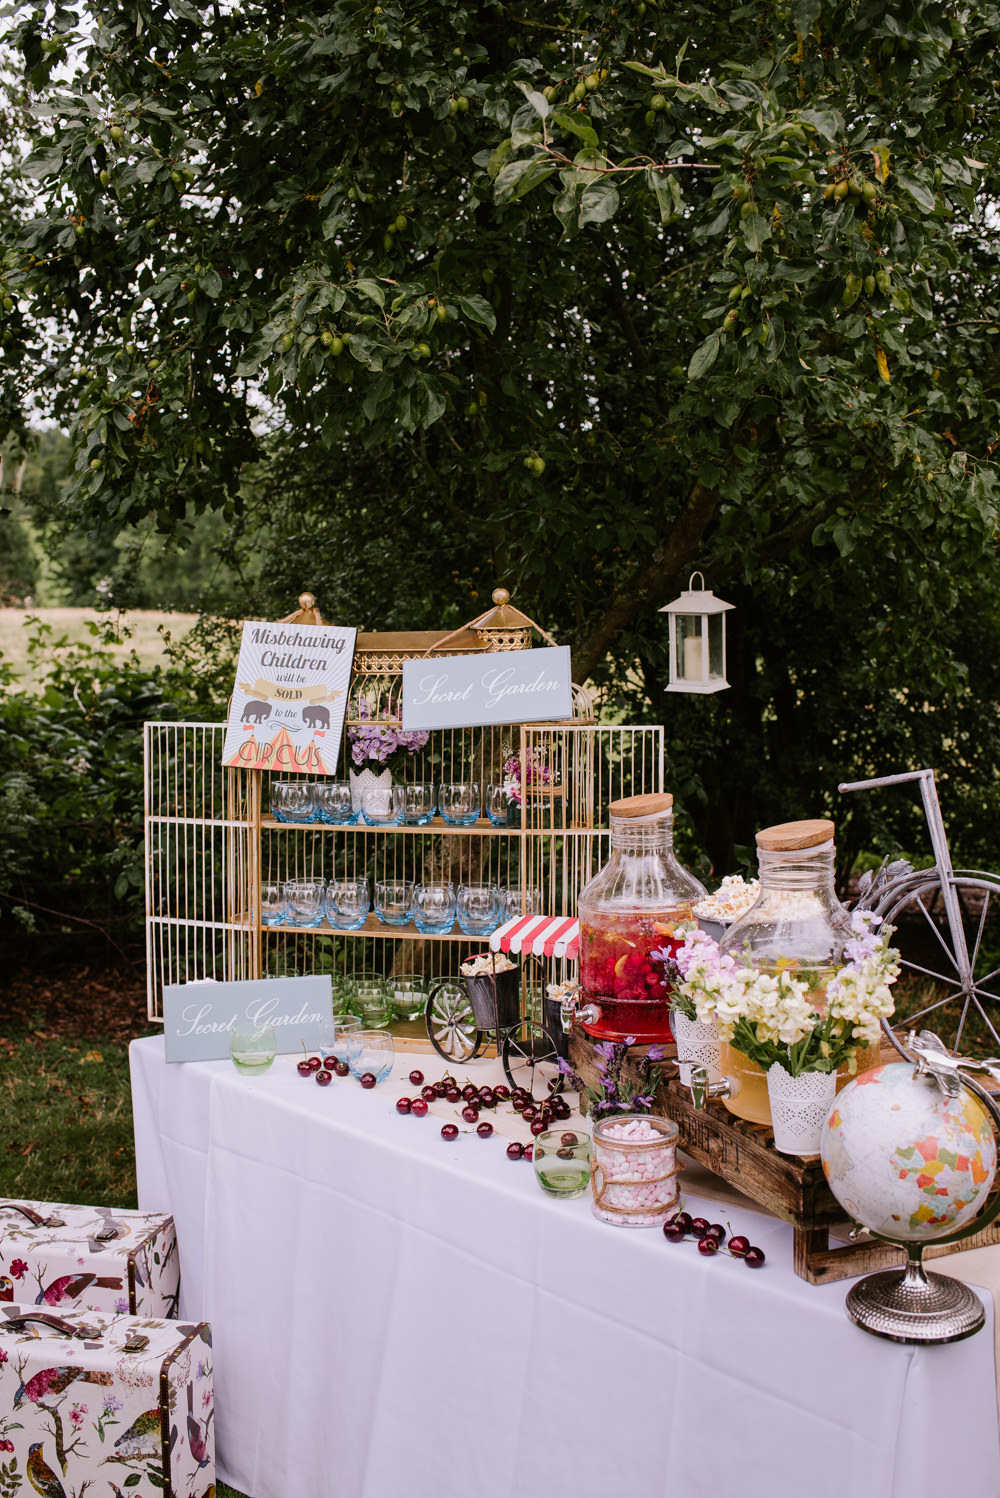 Bright Festival Themed At Home Wedding In A Tipi With Wild Flowers